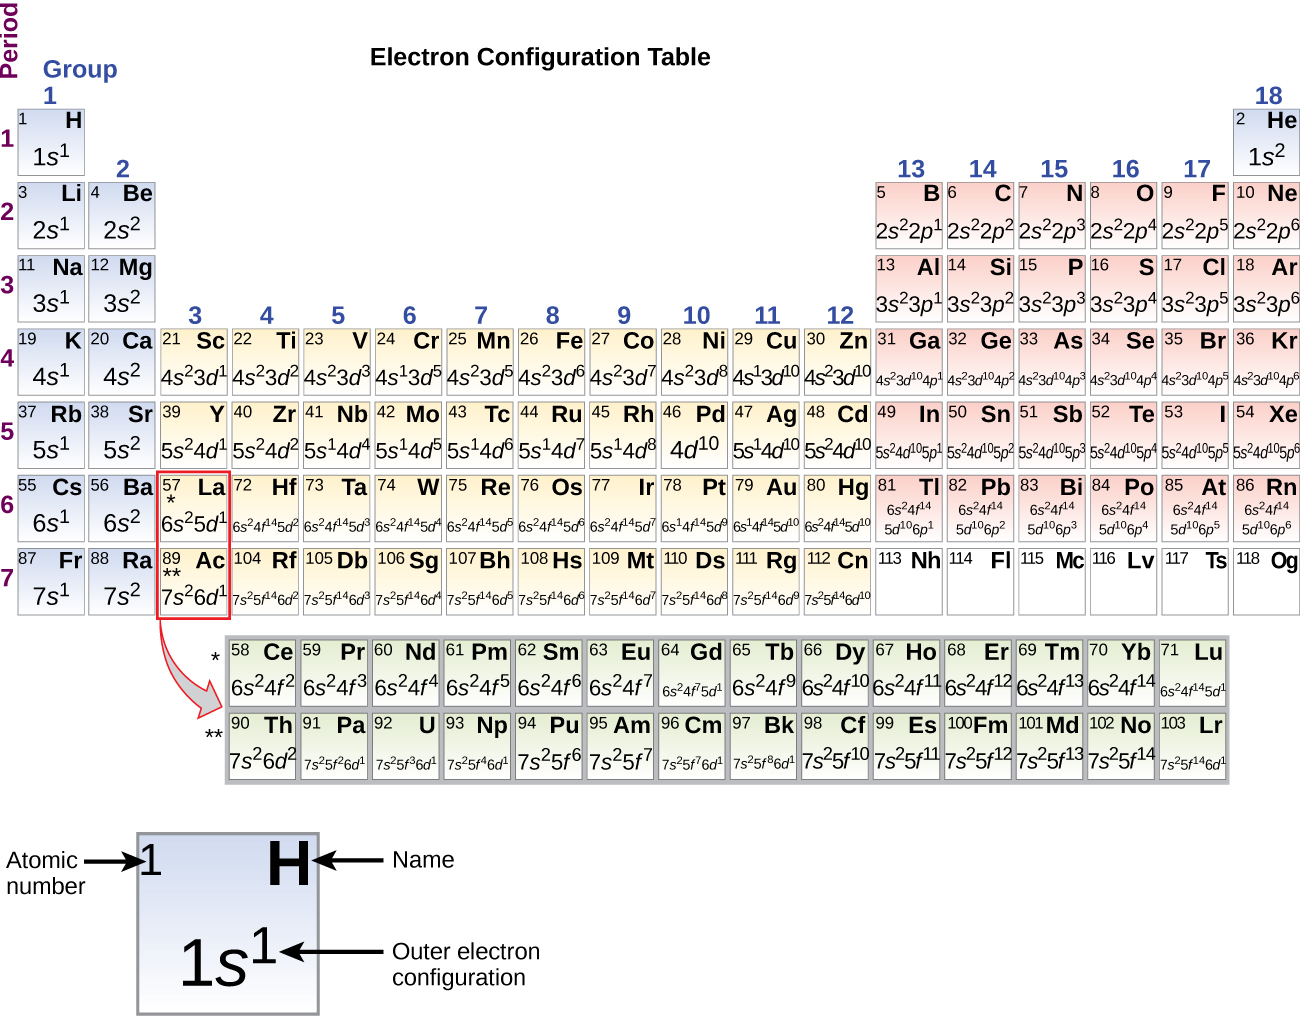 """Aufbau Principle. A periodic table, entitled, """"Electron Configuration Table"""" is shown. The table includes the outer electron configuration information, atomic numbers, and element symbols for all elements. A square for the element hydrogen is pulled out beneath the table to provide detail. The blue shaded square includes the atomic number in the upper left corner, which is 1; the element symbol, H, in the upper right corner; and the outer electron configuration in the lower, central portion of the square. For H, this is 1s superscript 1."""